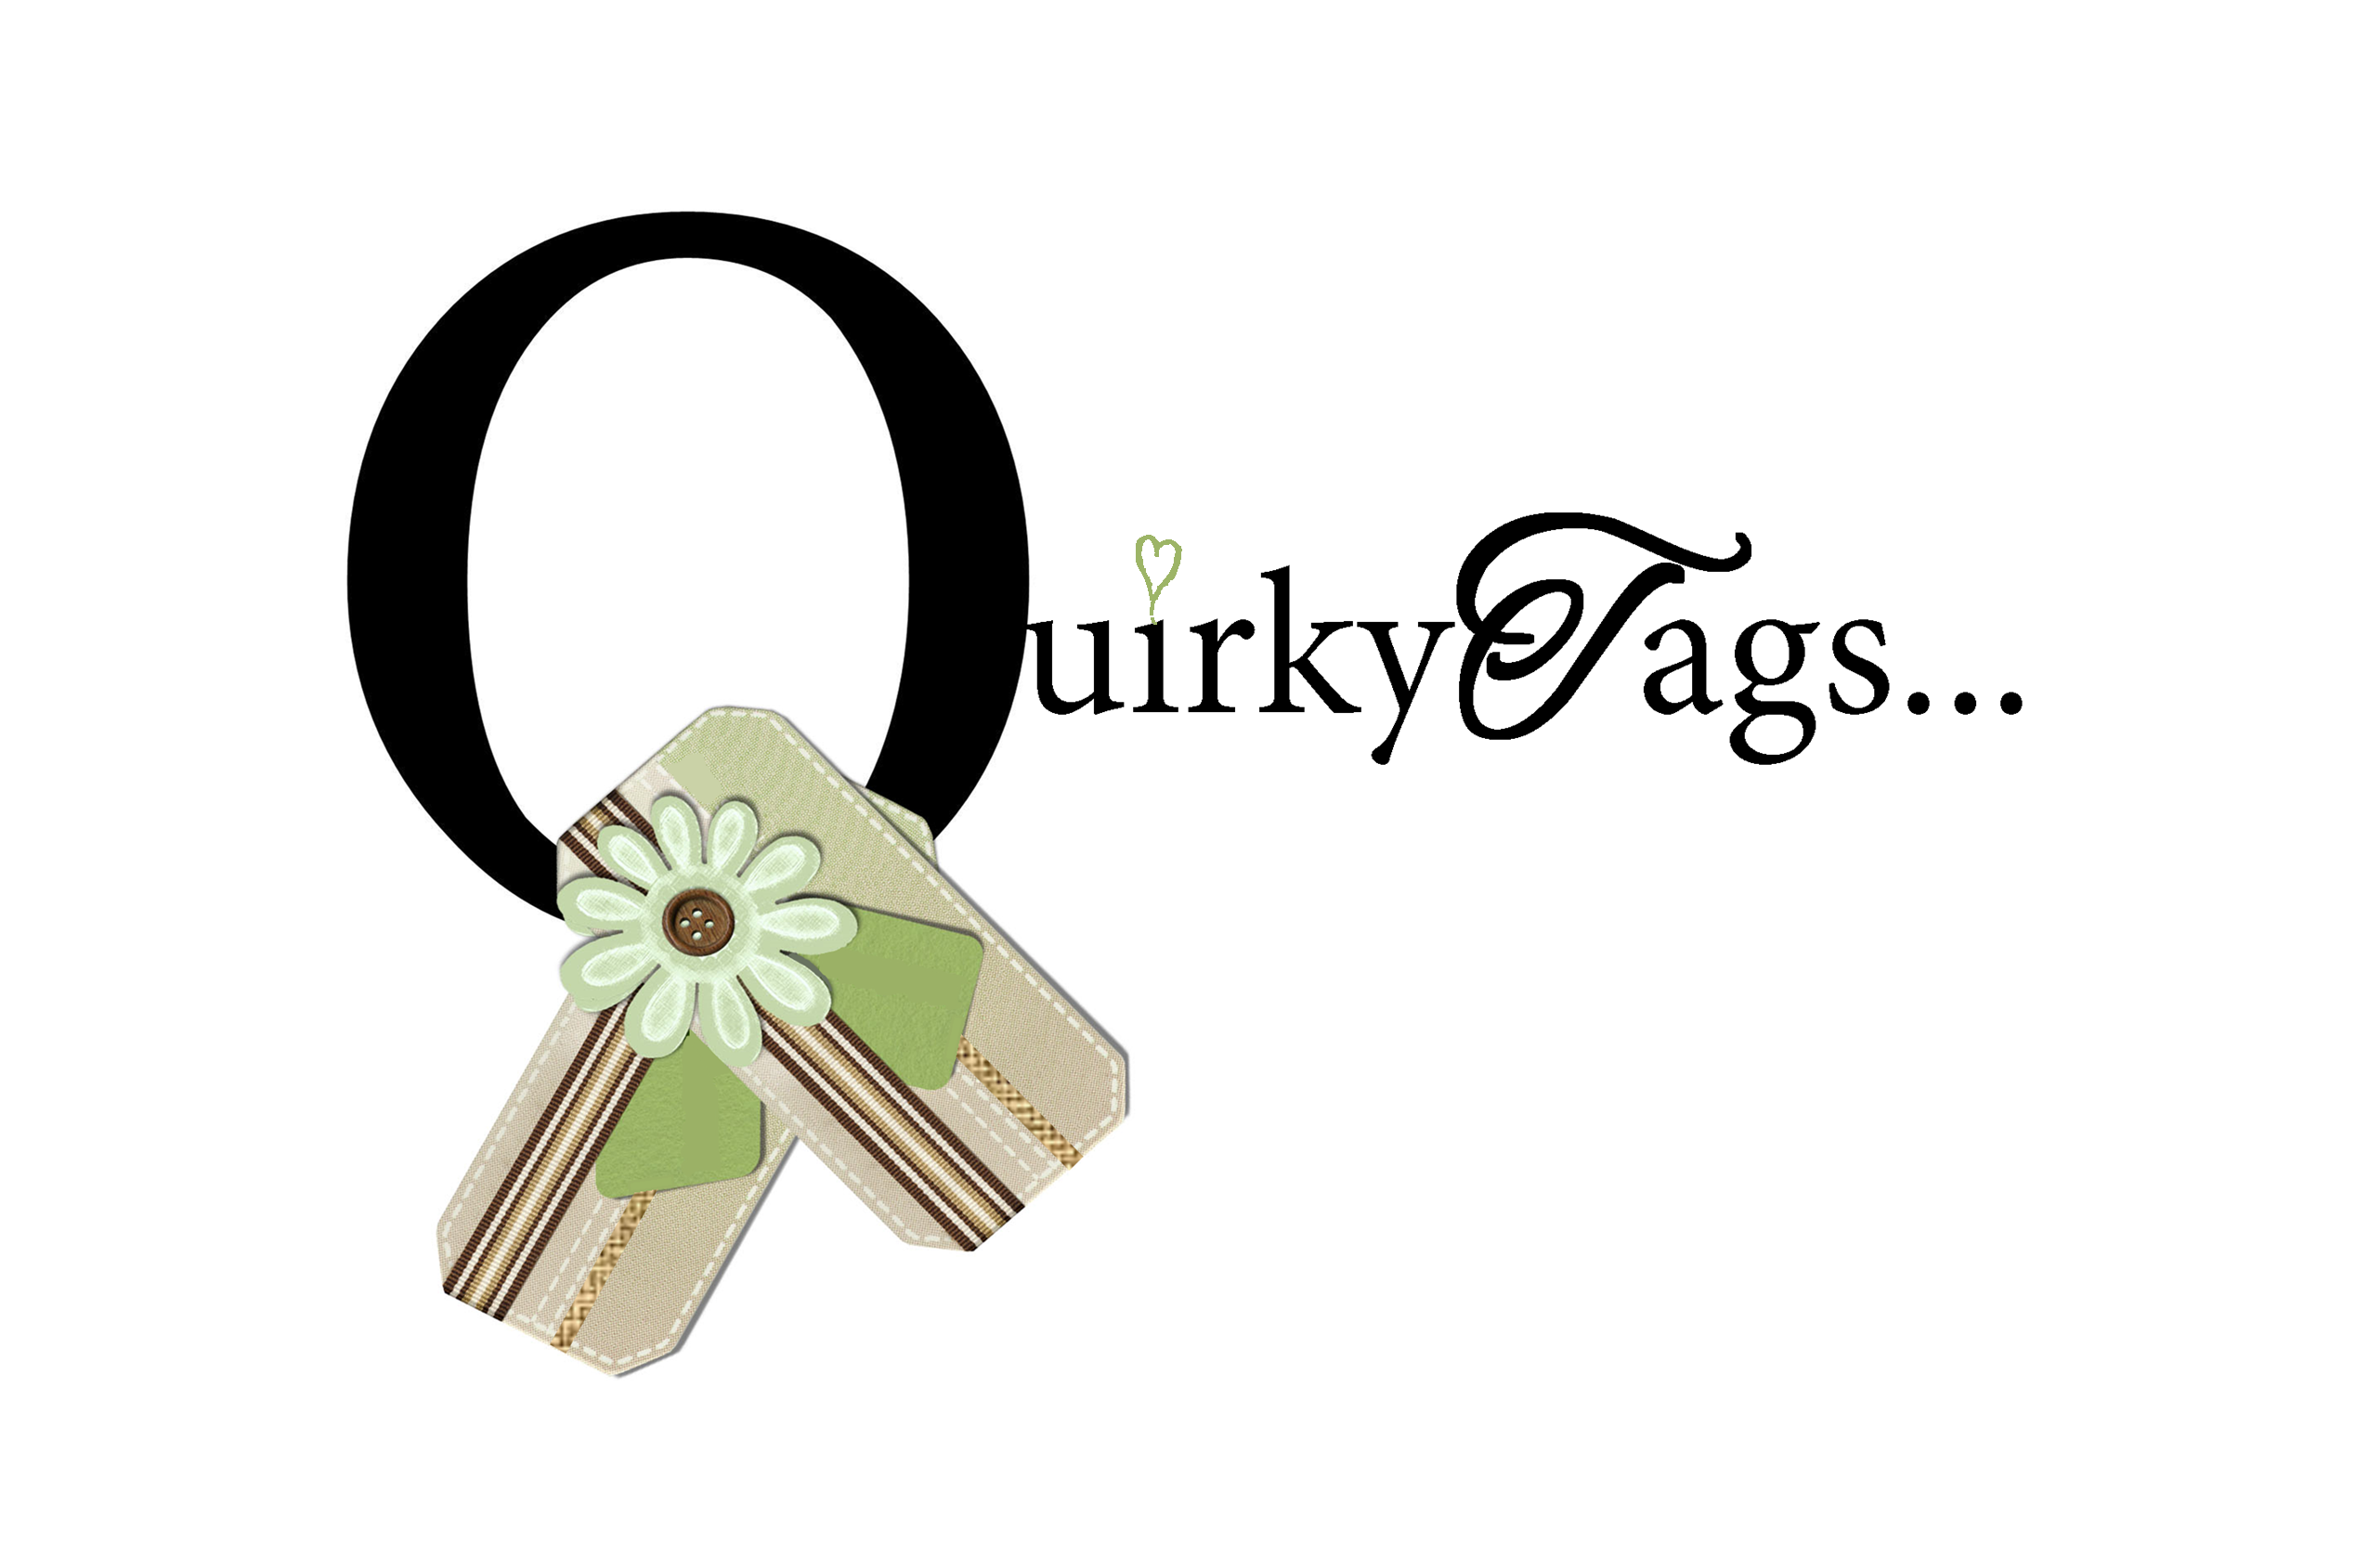 Quirkytags...